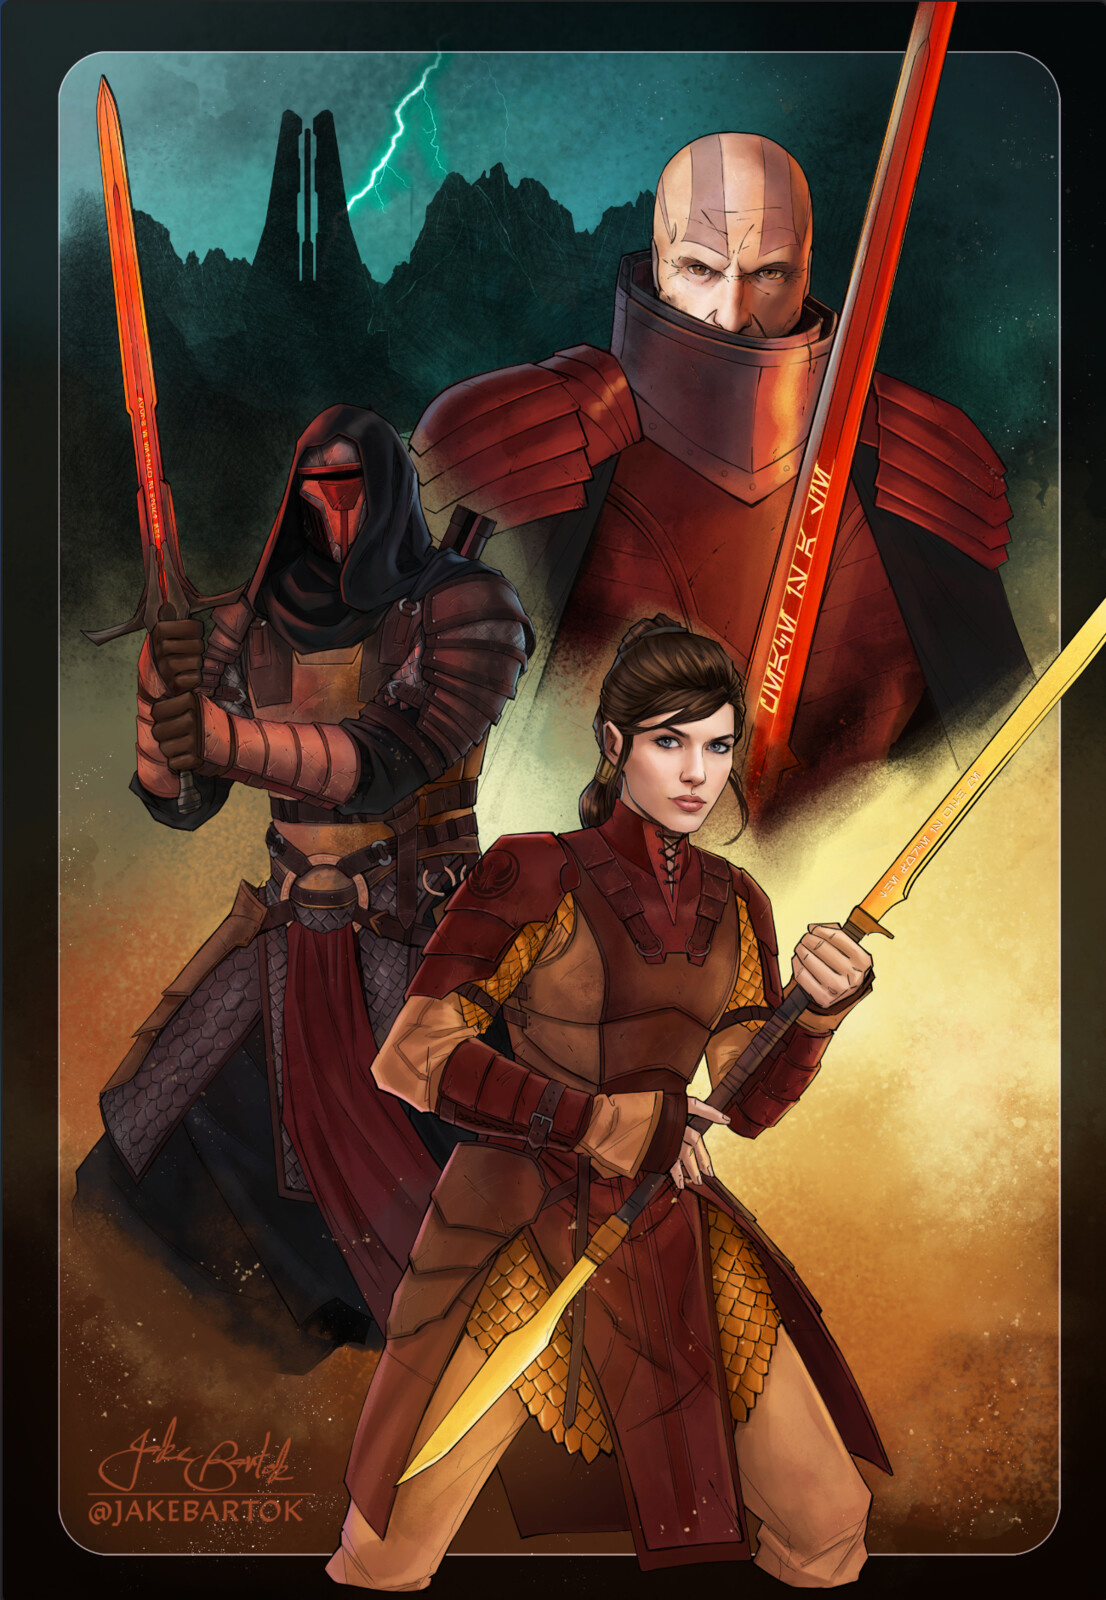 Fantasy Knights of the Old Republic